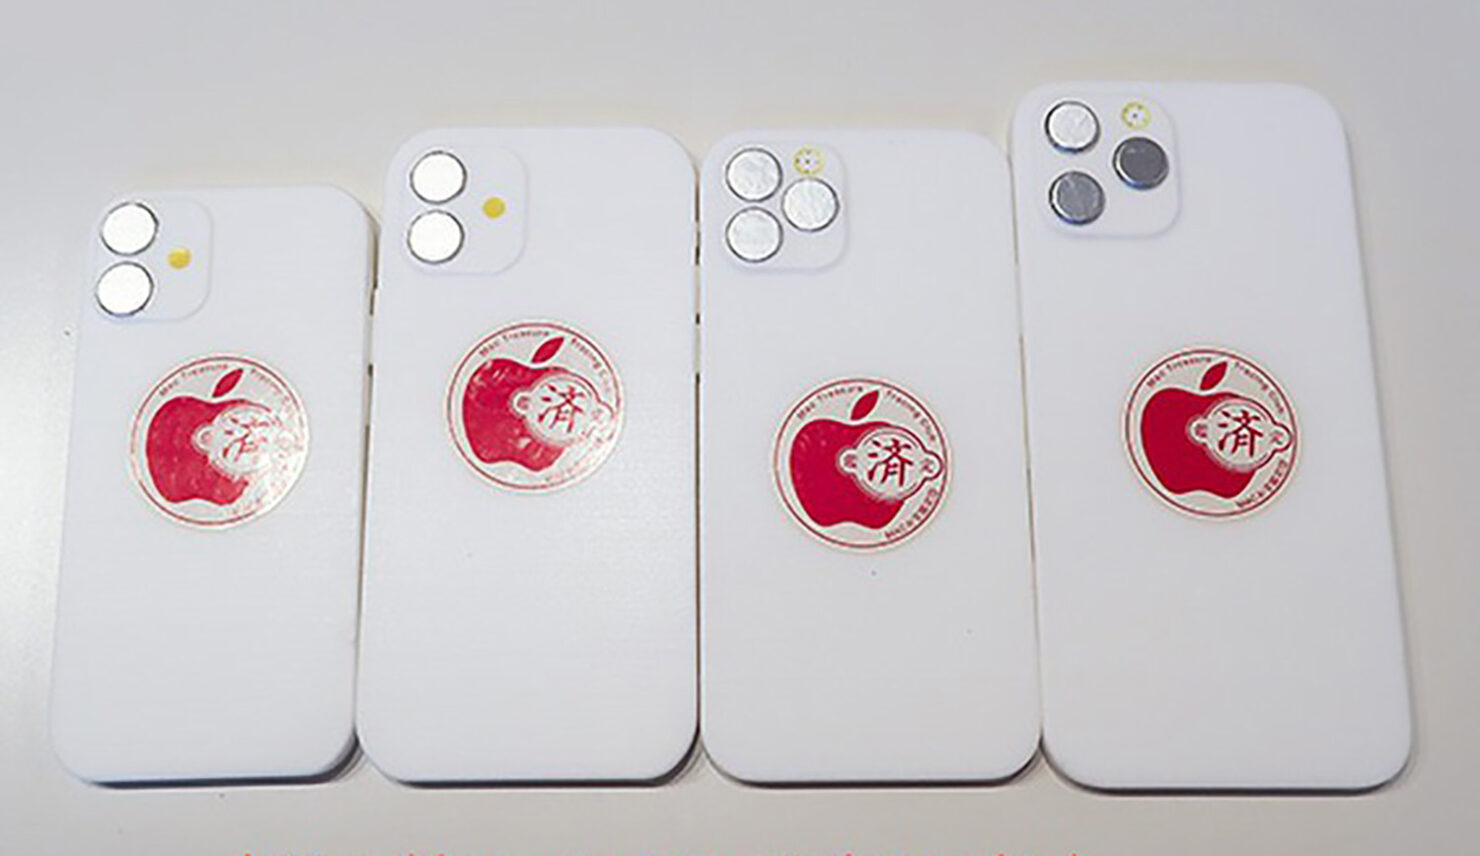 iPhone 12 Mockups of All Four Models Provide Details on Number of Cameras, Display Size, as Well as Design